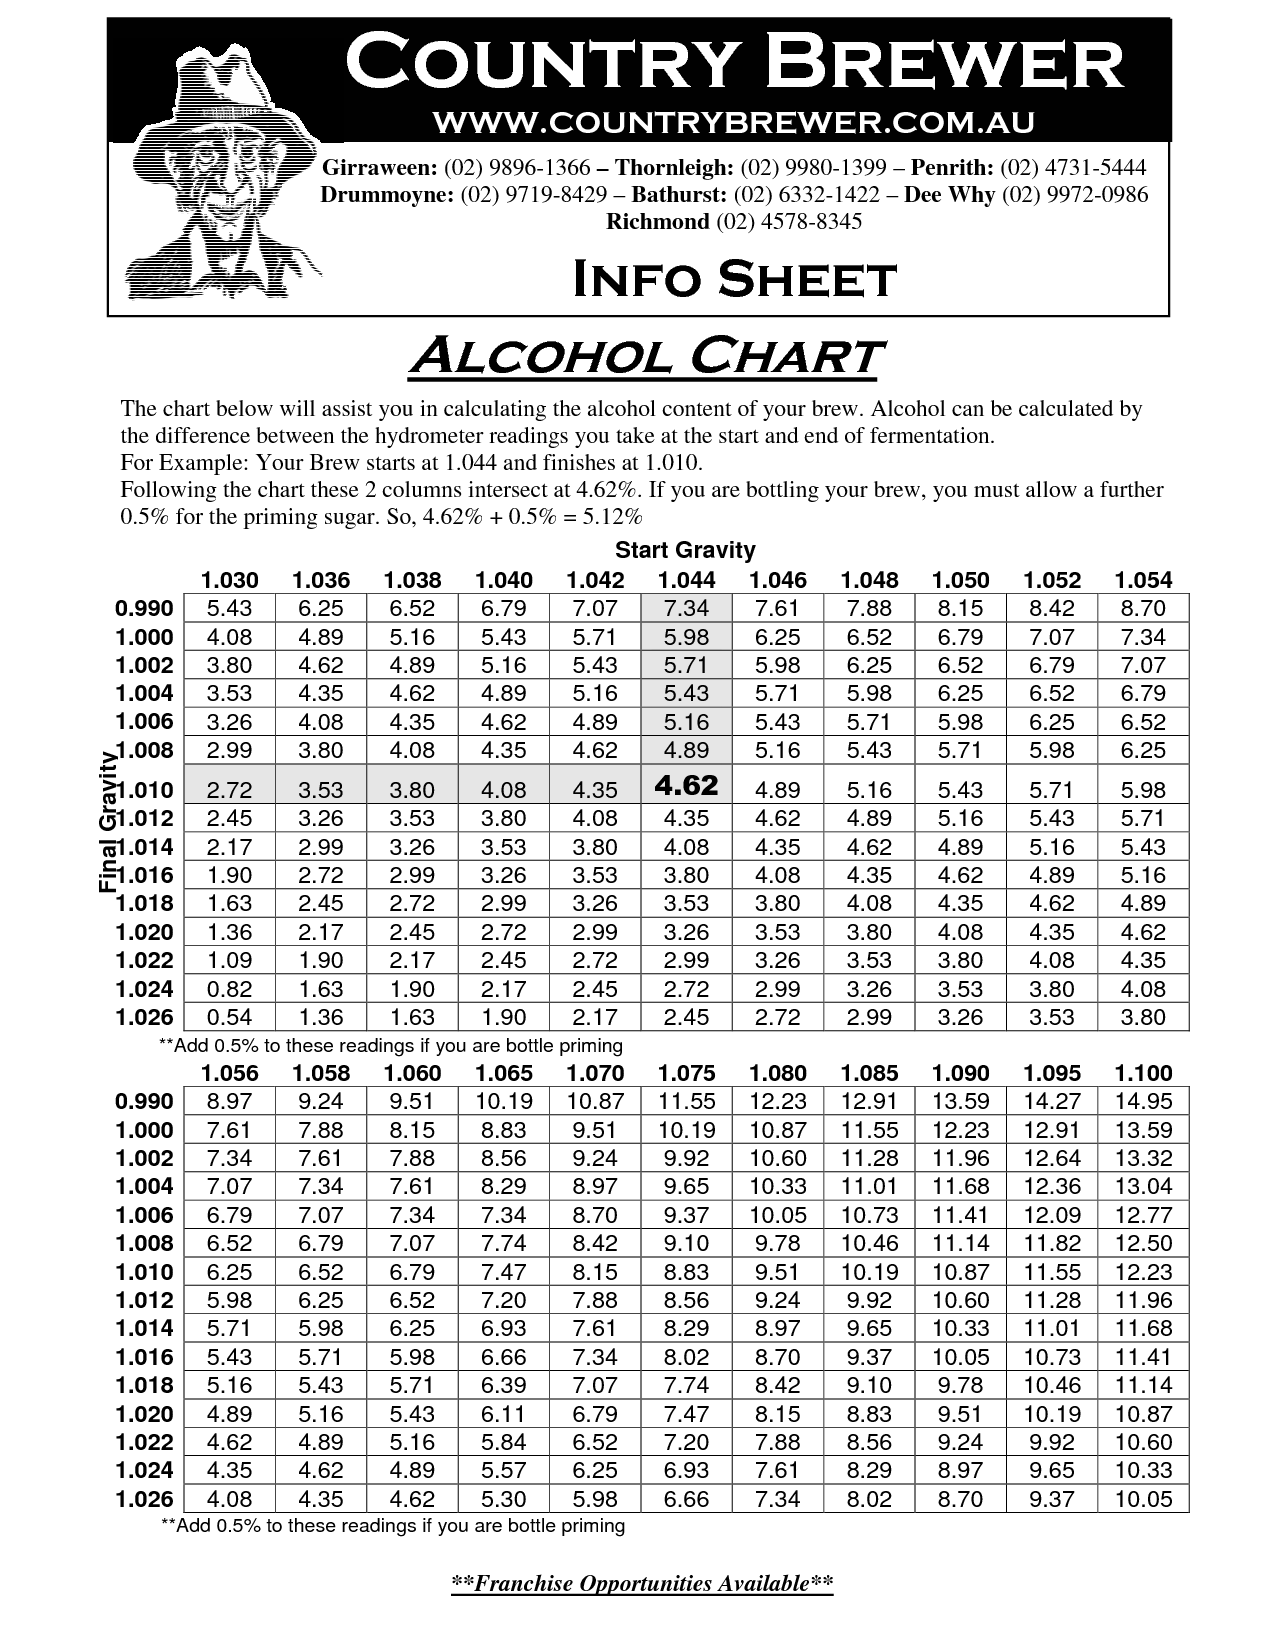 Calculating Alcohol Content